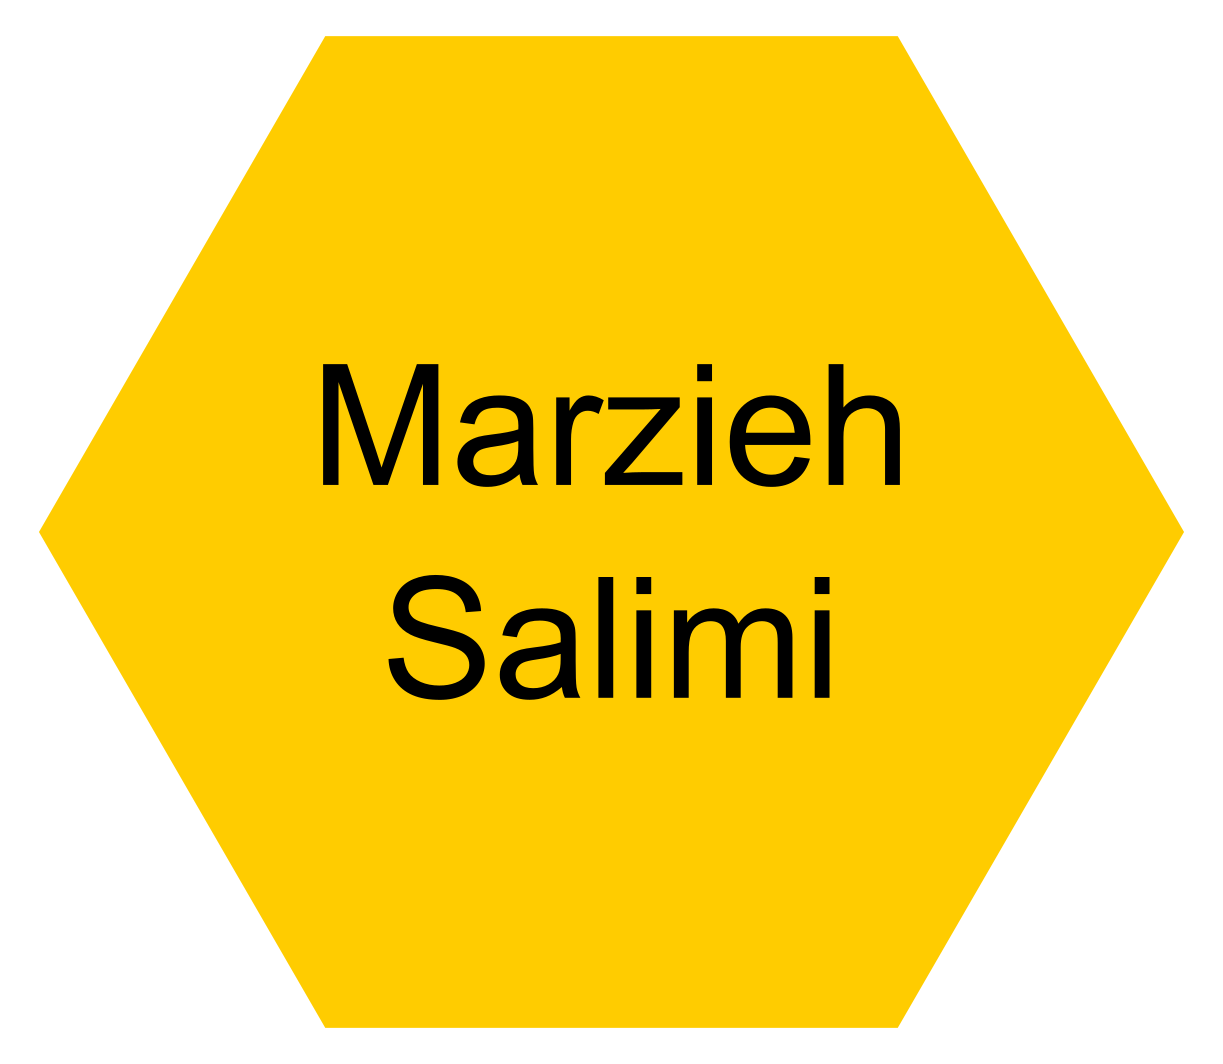 Dr. Marzieh Salimi (University of Exeter: Experimental Officer) - Click this icon to reveal their contact details.